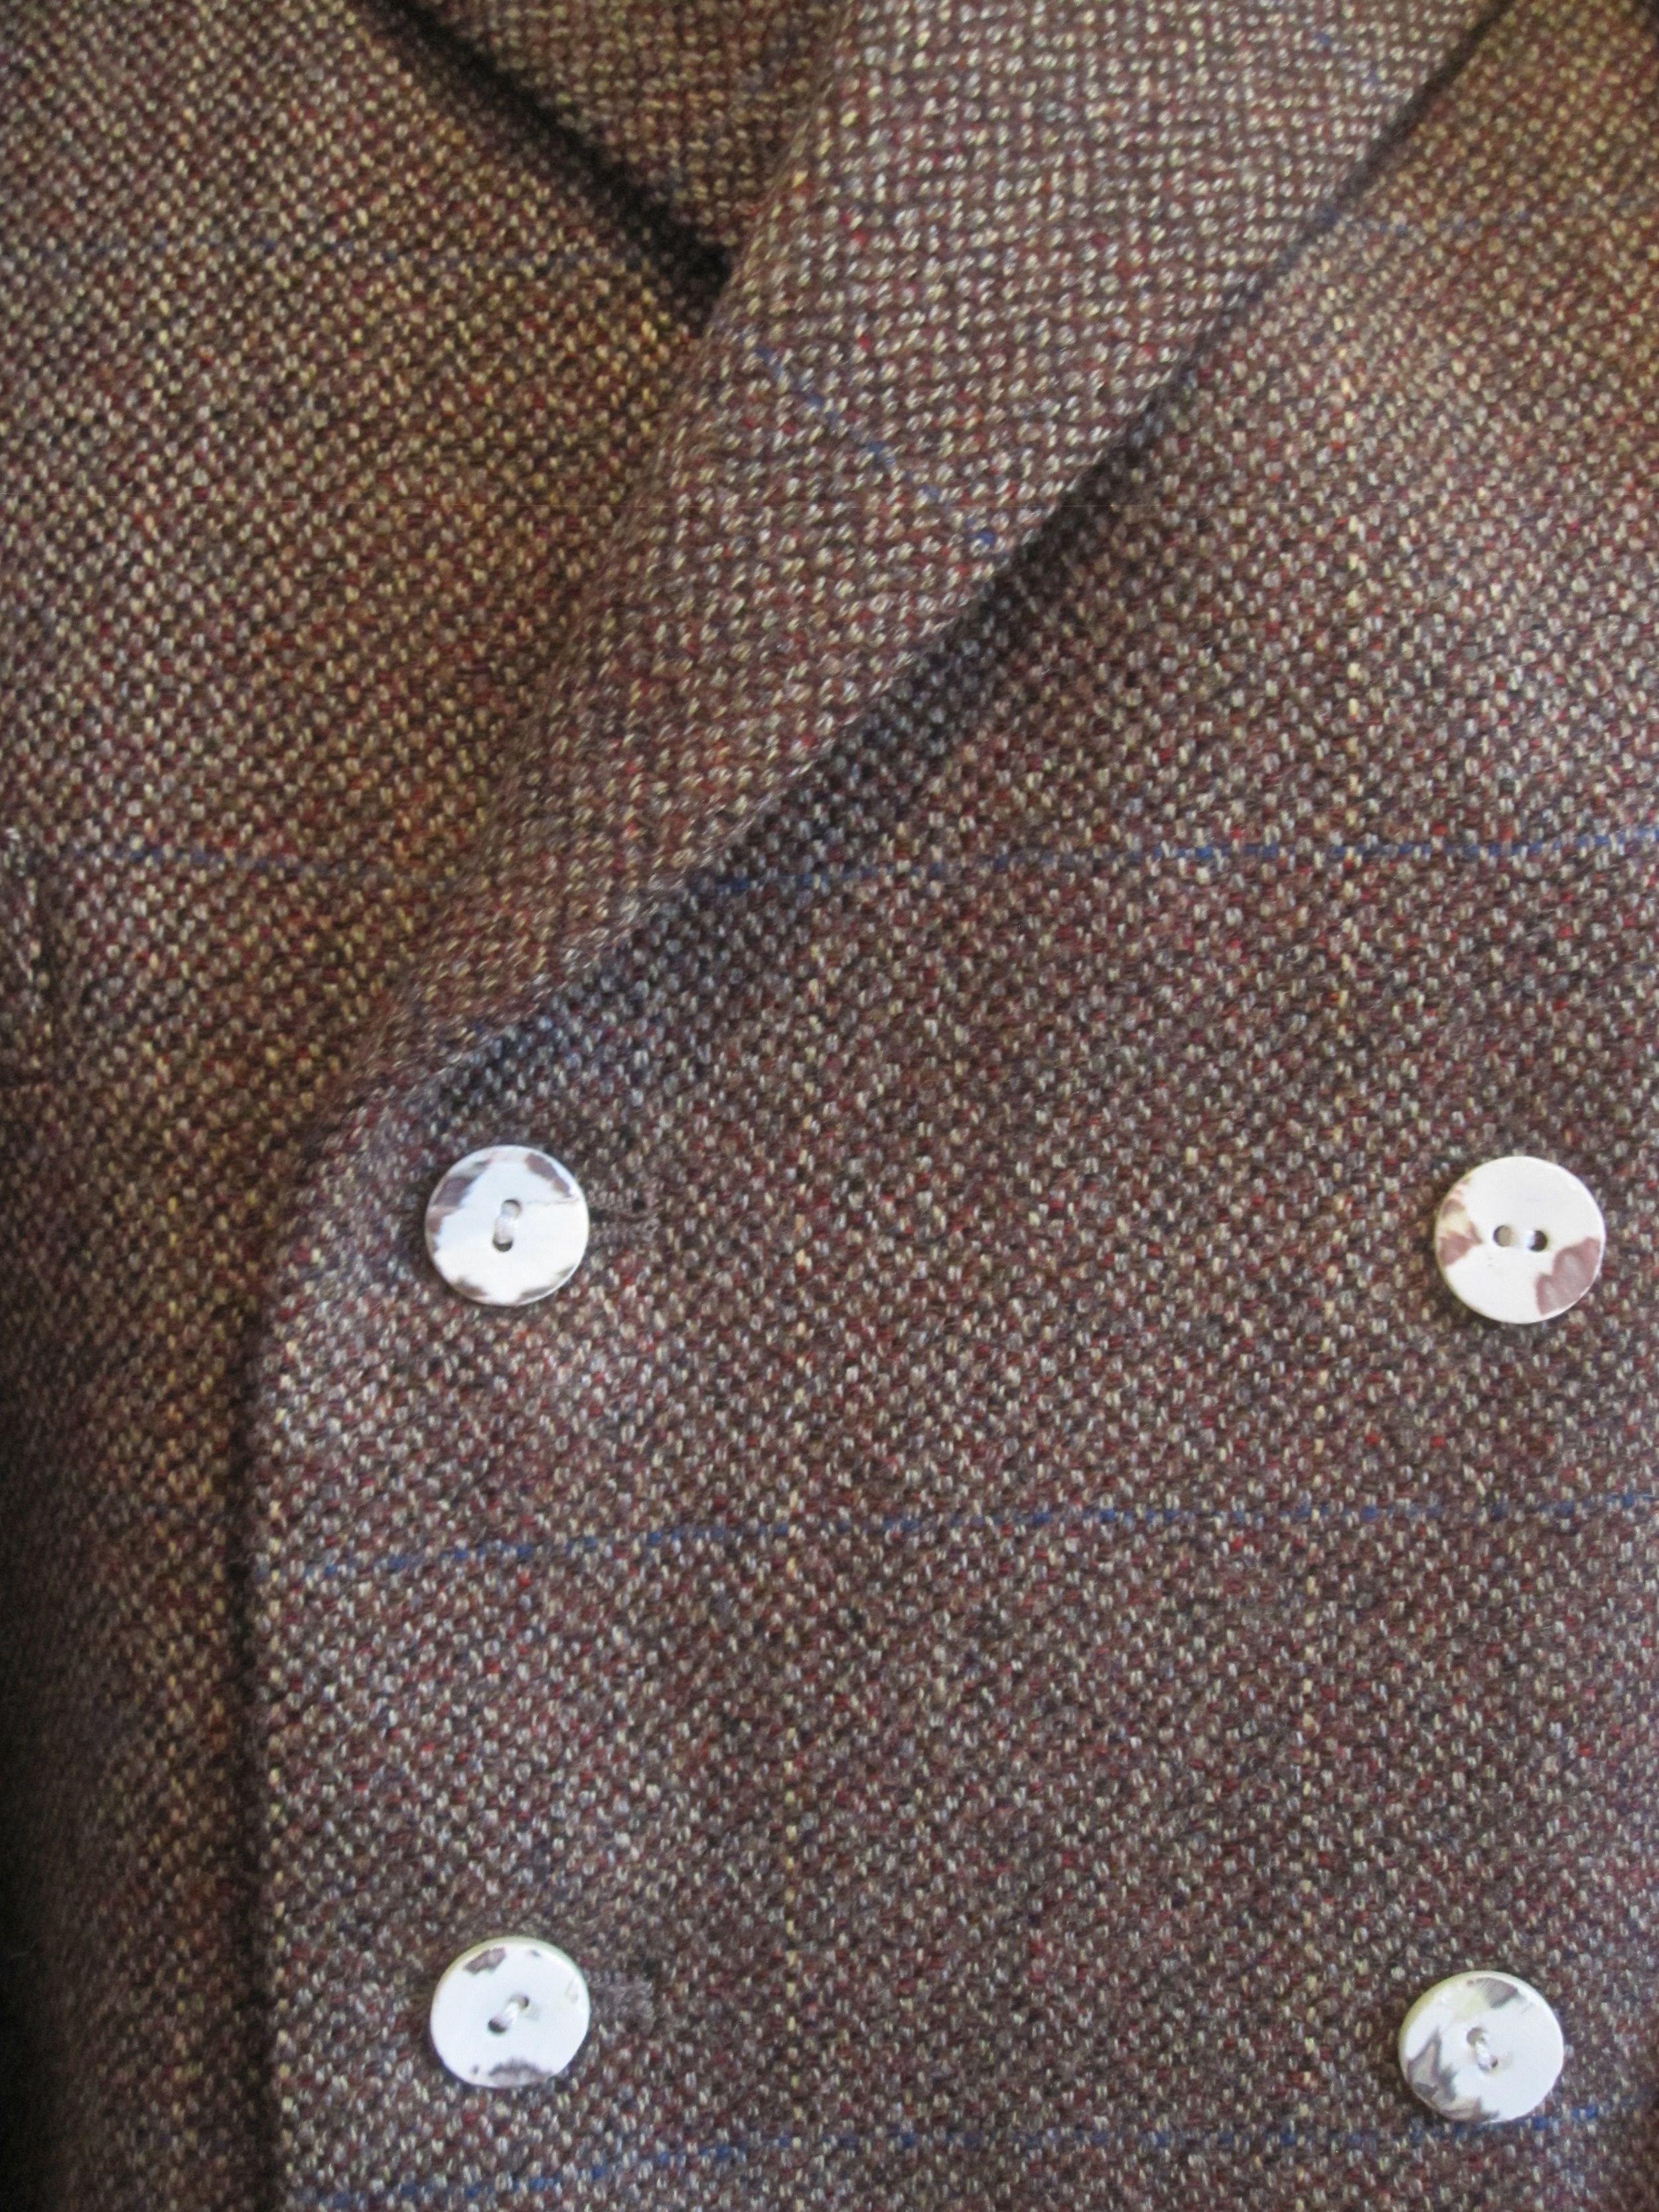 Poacher's double breasted Waistcoat button detail.jpg